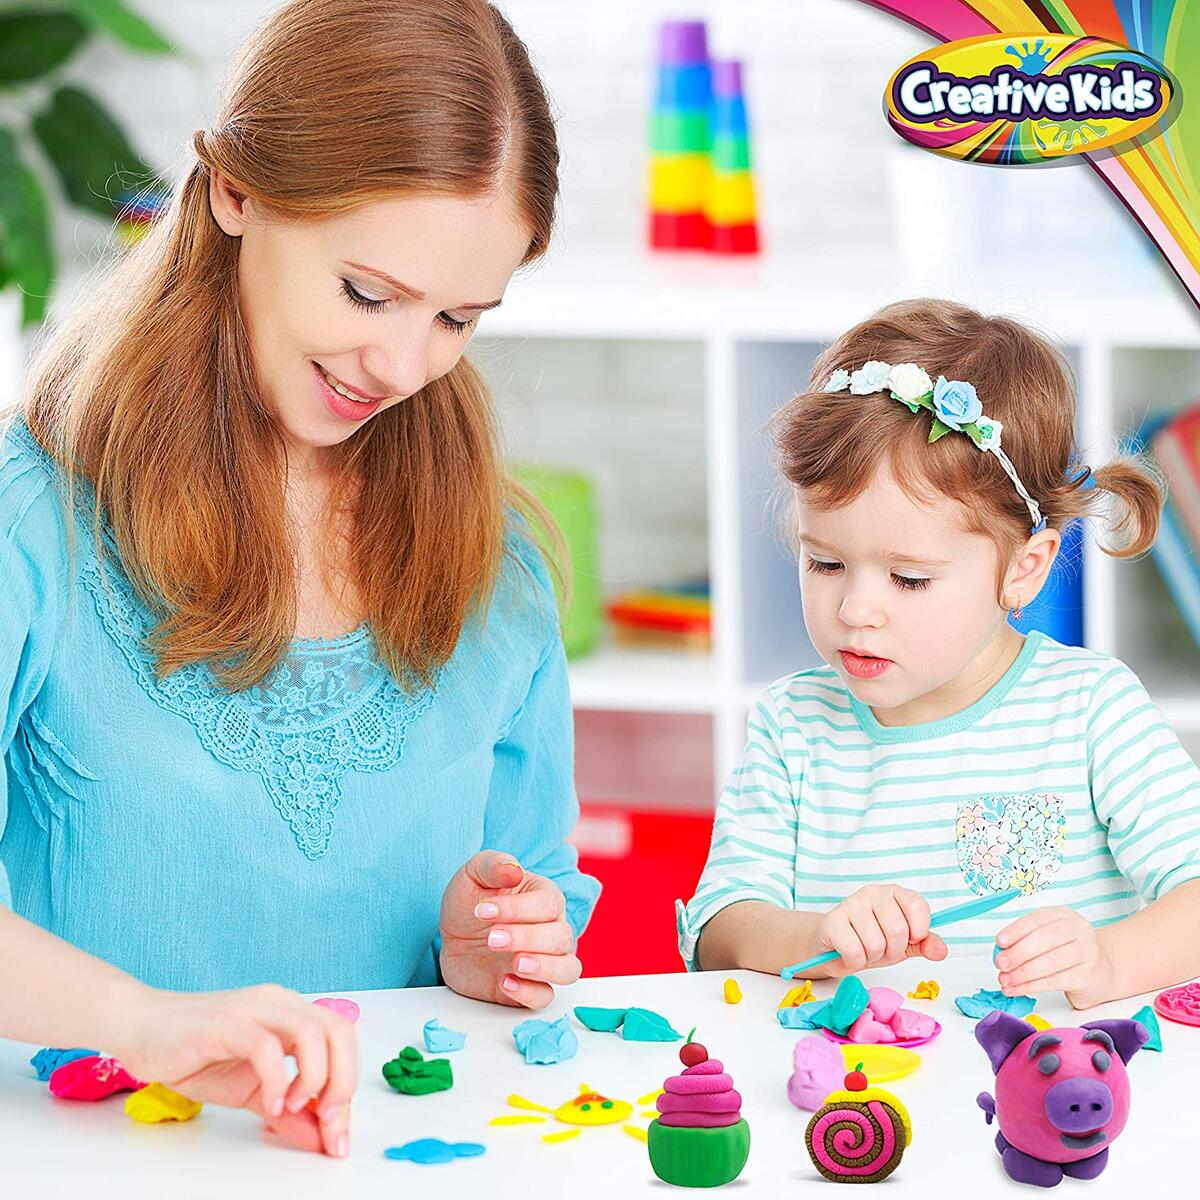 Creative Kids Air Dry Clay Modeling Crafts Kit - Pack Of 50 With Storage